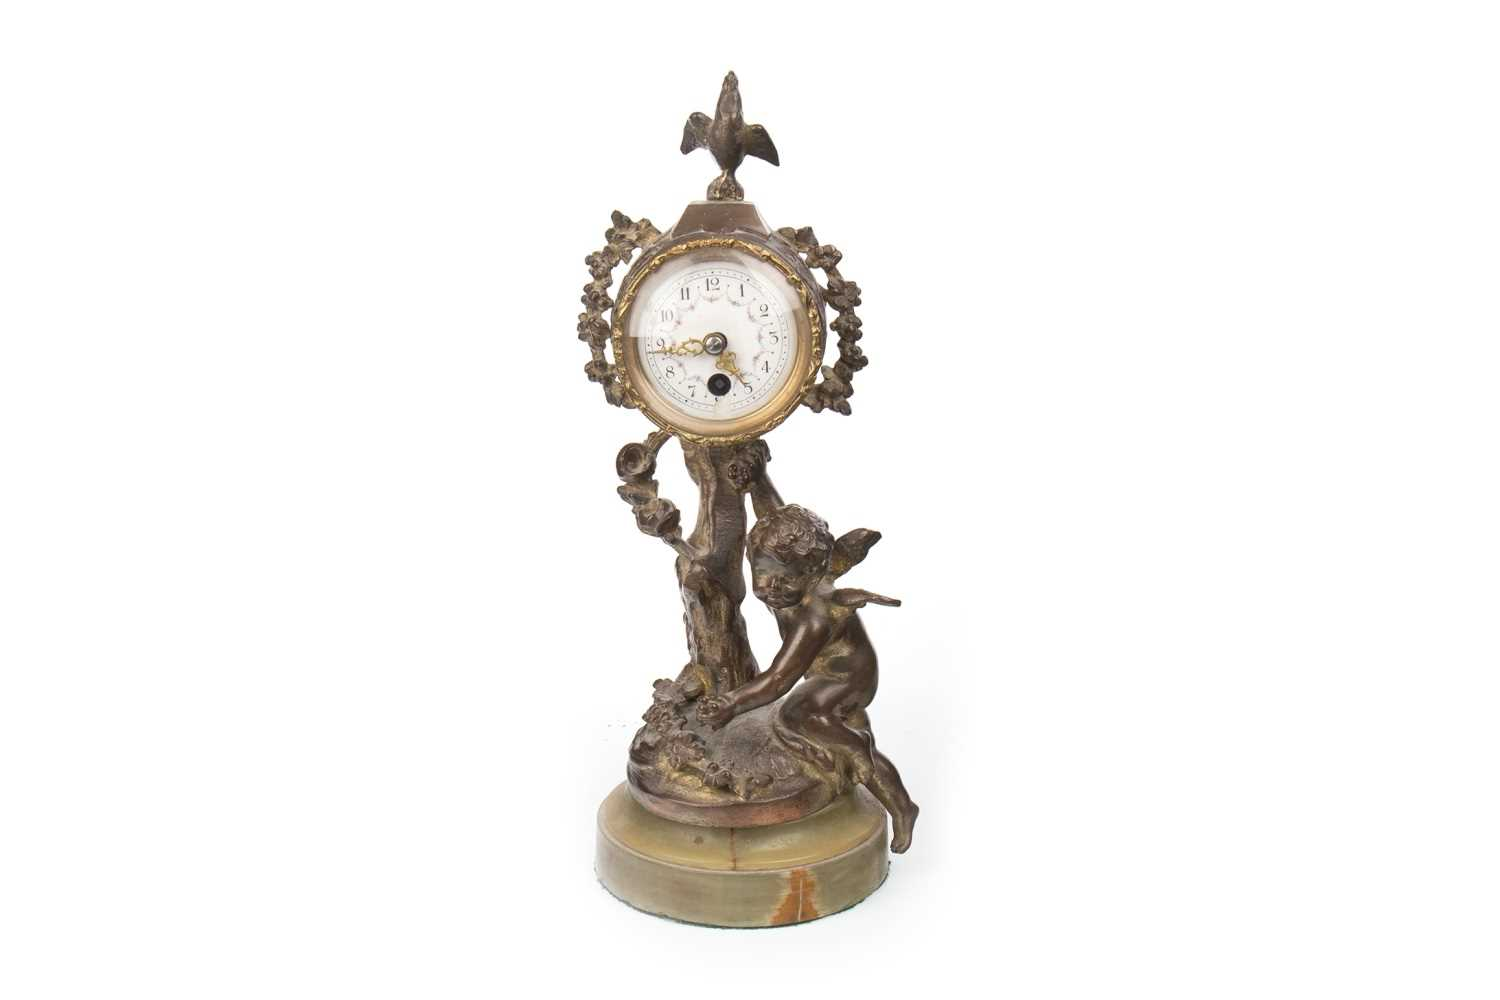 Lot 1399-A LATE 19TH CENTURY FRENCH FIGURAL CLOCK